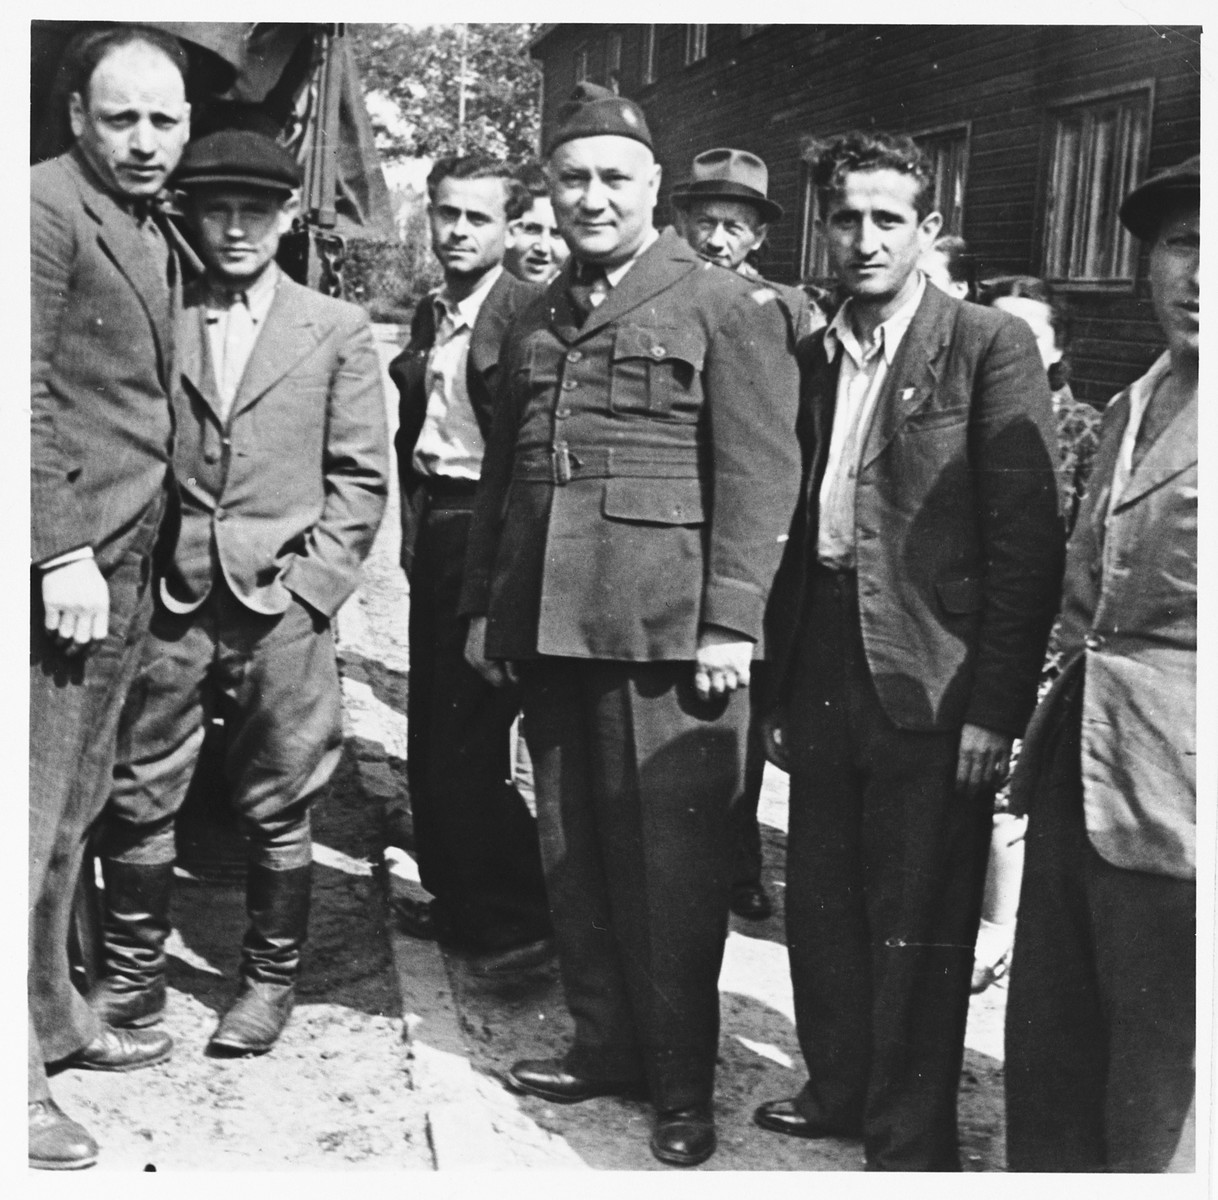 UNRRA camp director Harold Fishbein (center) poses with a group of Jewish DPs in the Schlachtensee displaced persons camp.